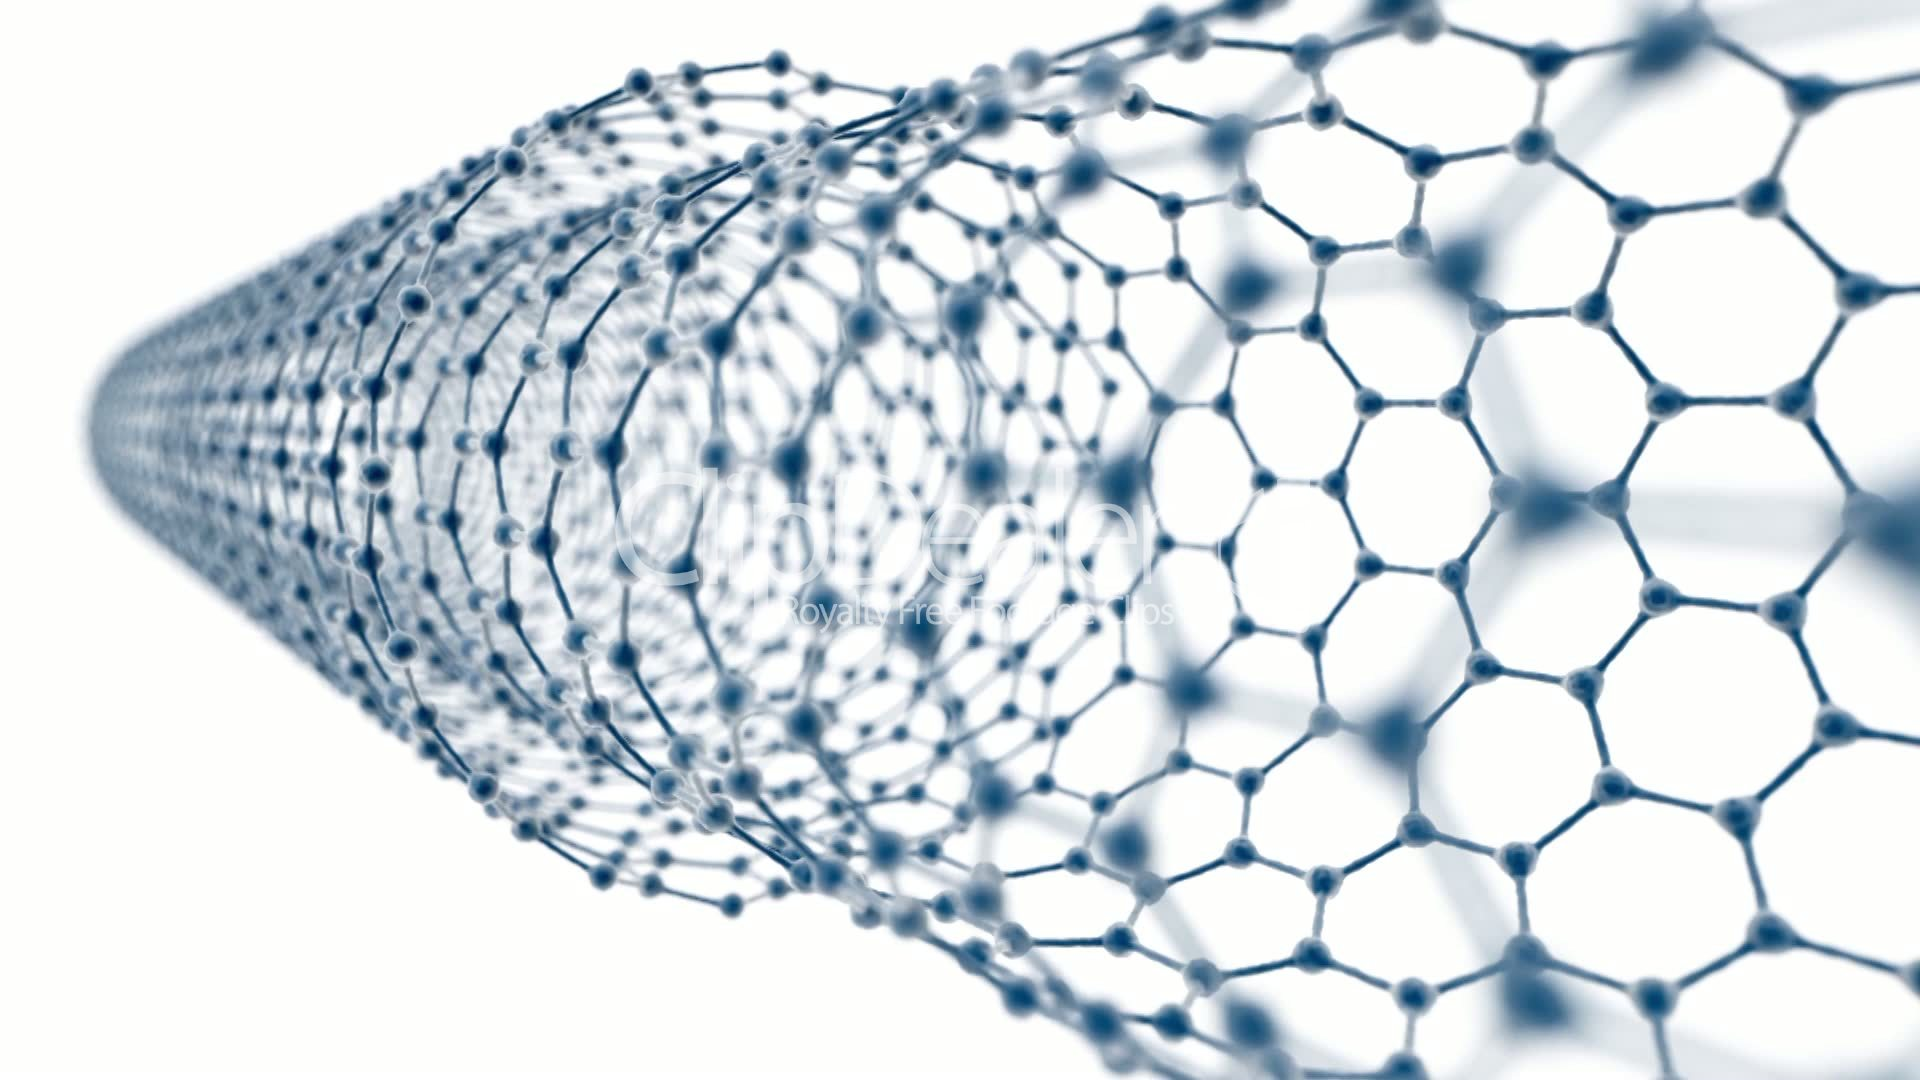 Multi Walled Carbon Nanotube